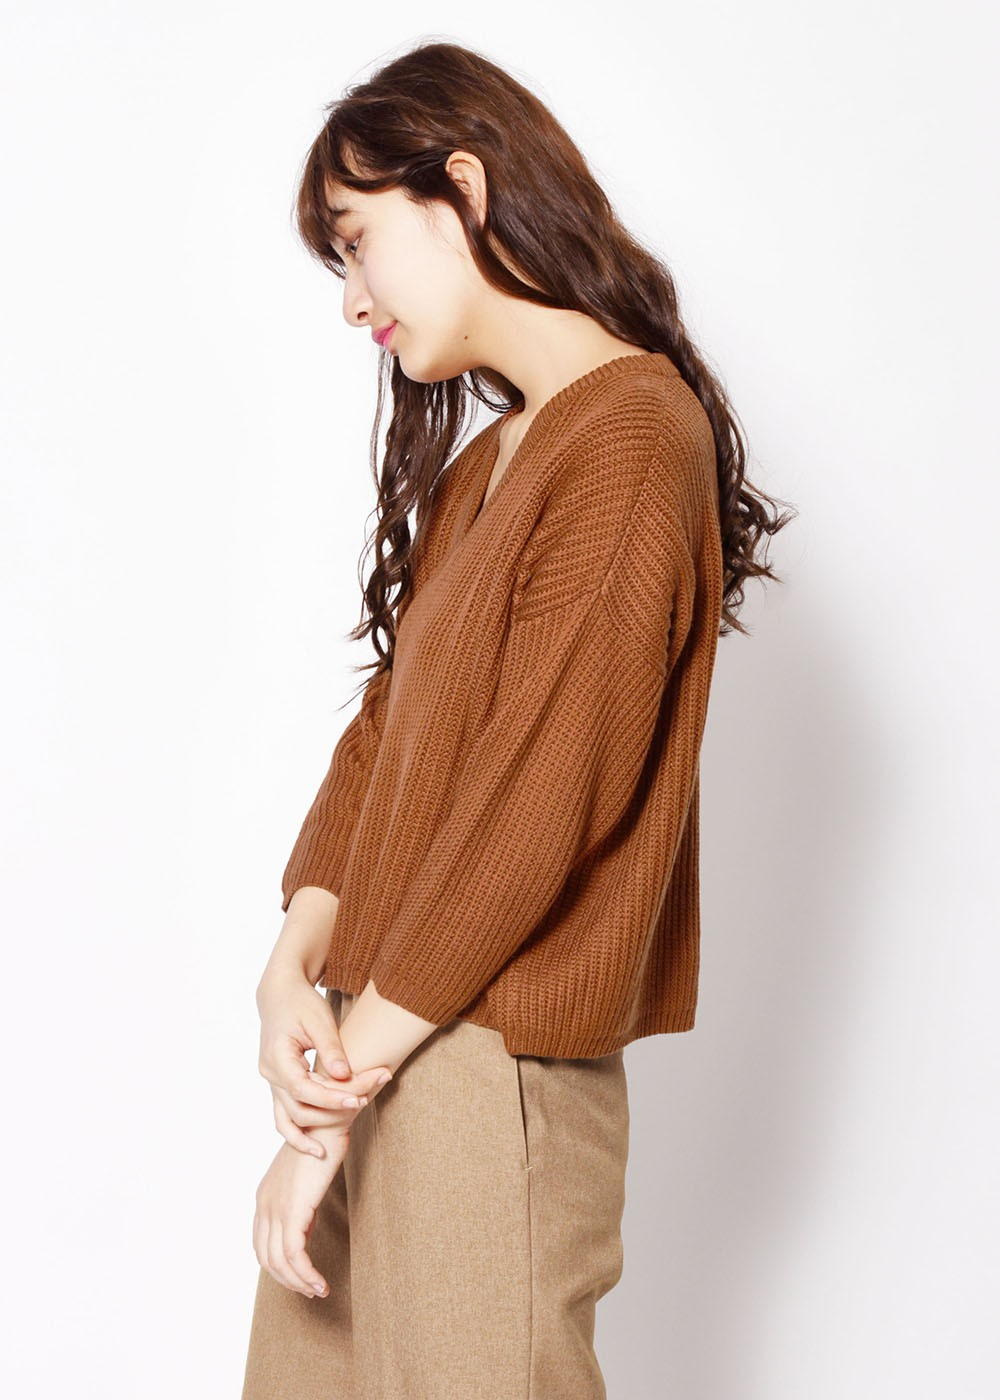 Vネックリブワイドニット|BROWN|ニット・セーター|URBAN RESEARCH warehouse Tops&Outer|最大80%OFF